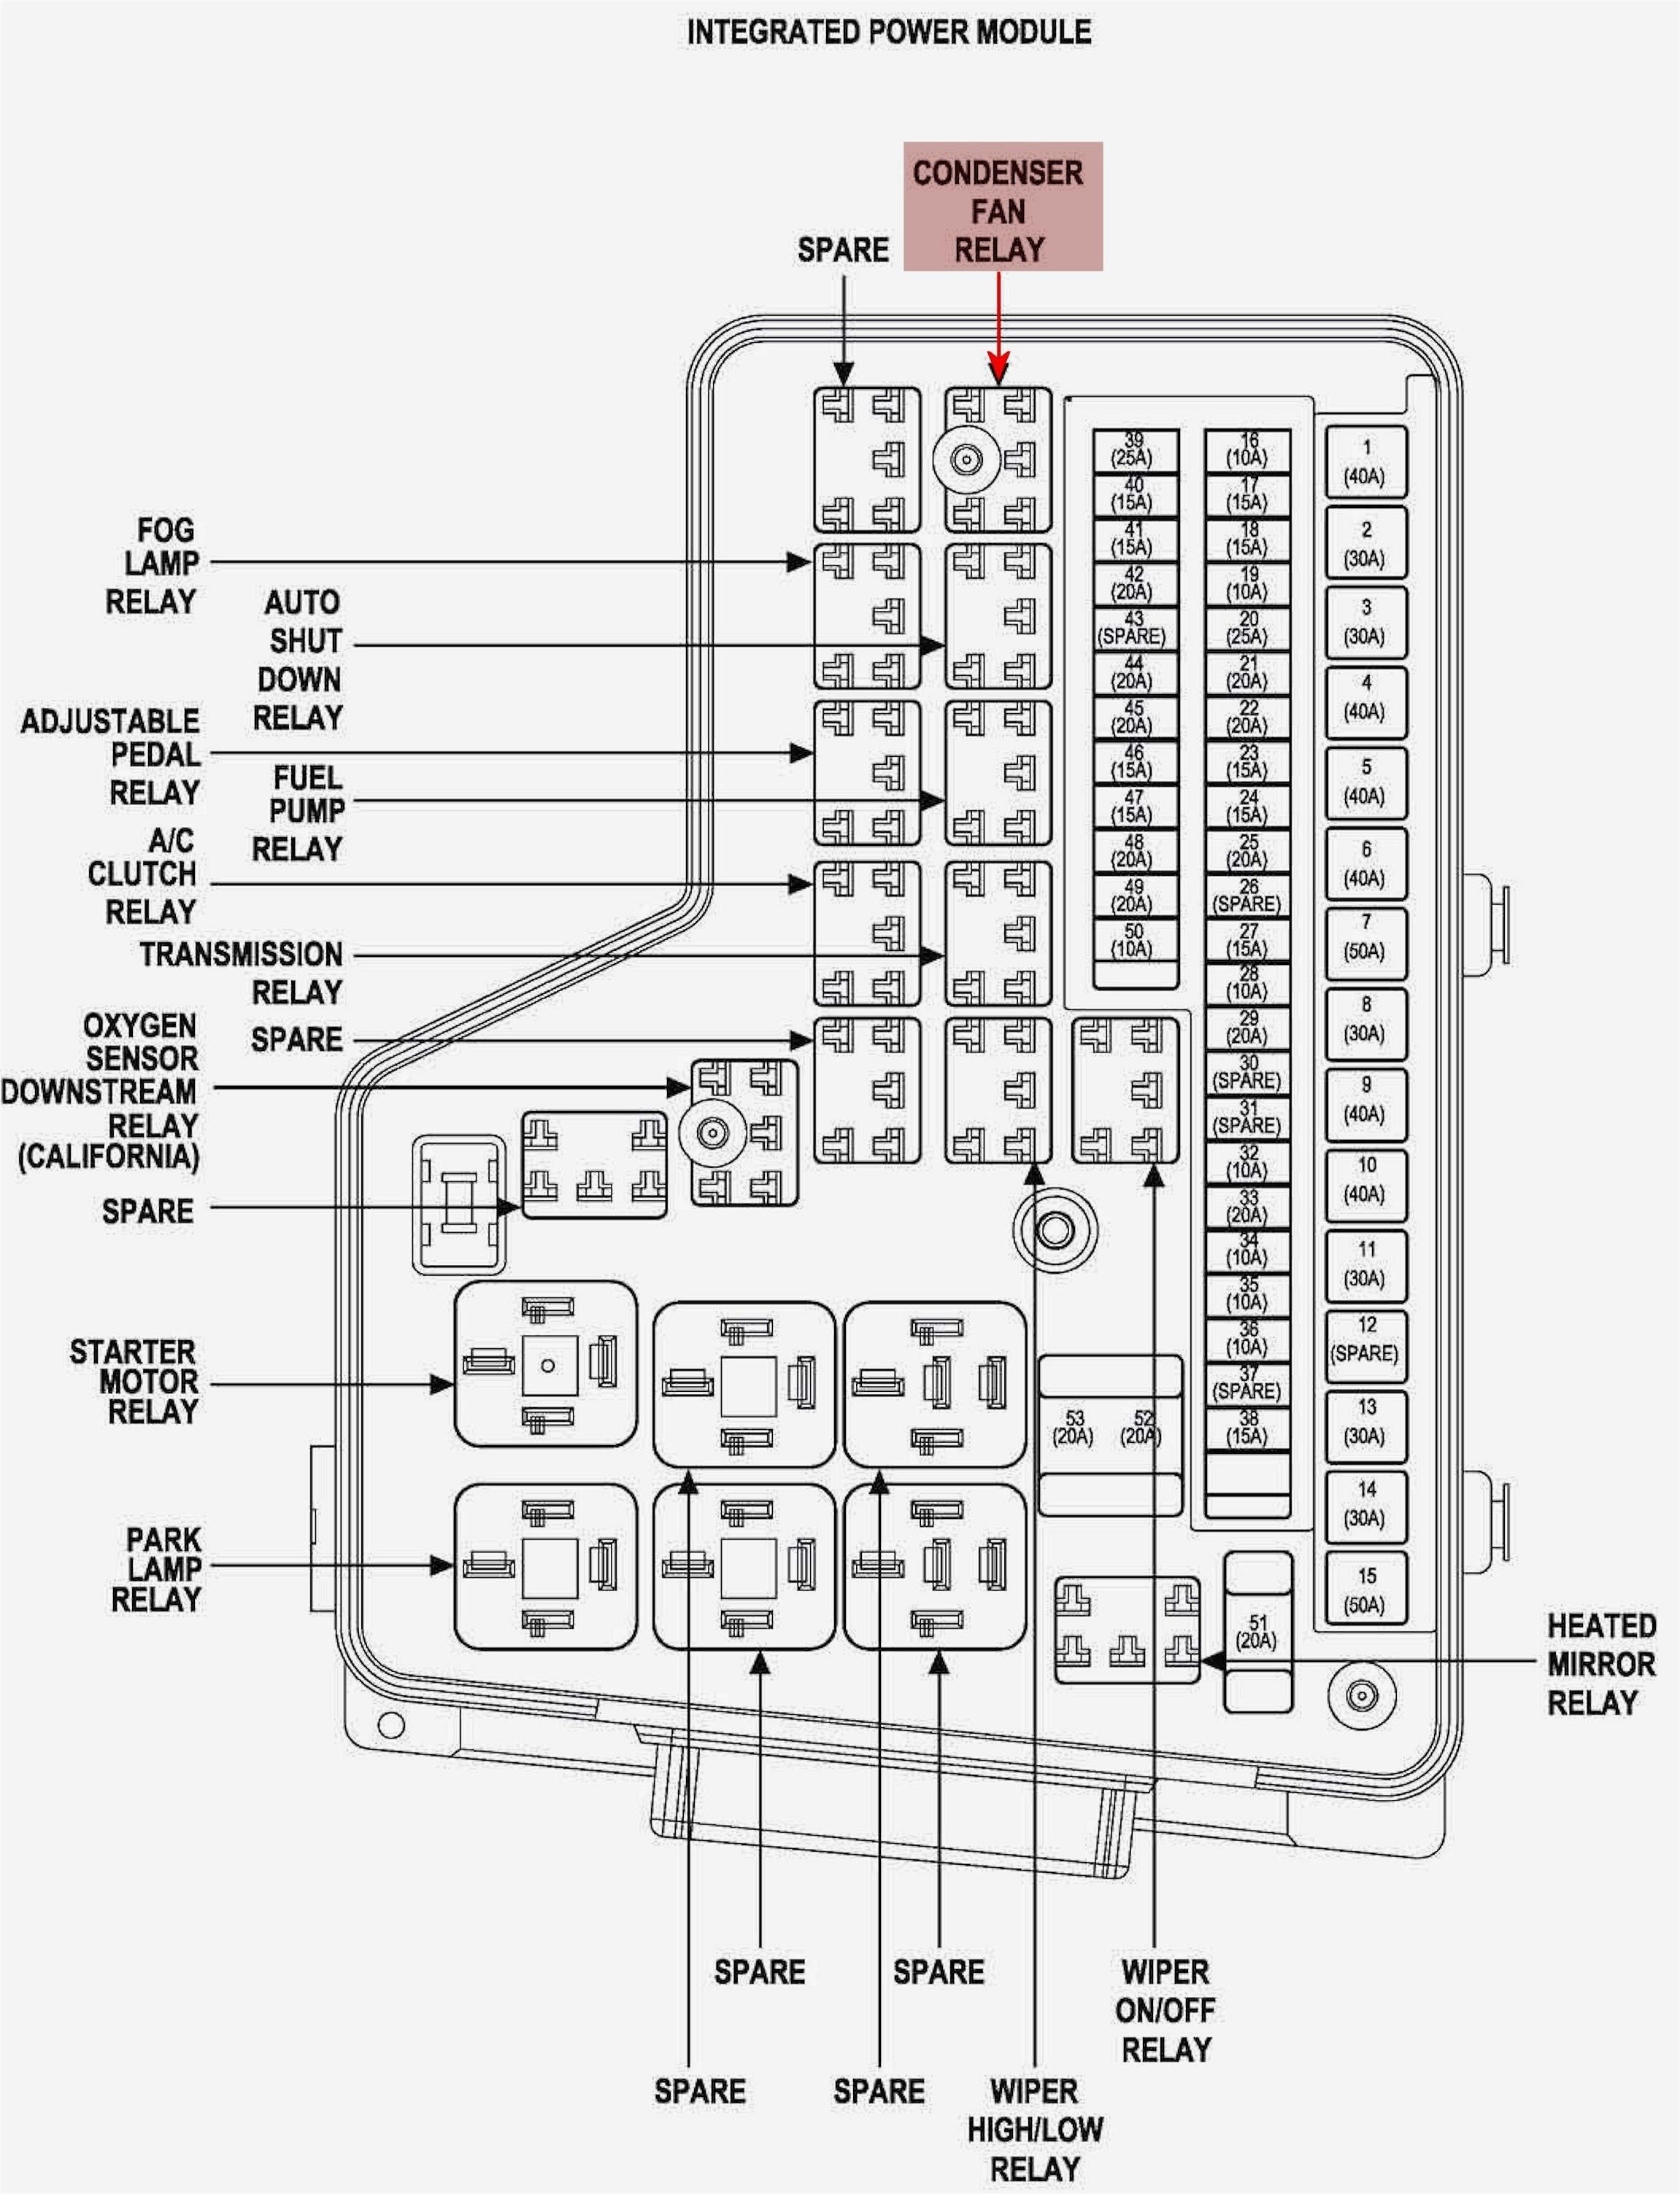 2005 jeep liberty radio wiring diagram dodge ram 1500 electrical diagrams fuse wiring diagrams site  dodge ram 1500 electrical diagrams fuse